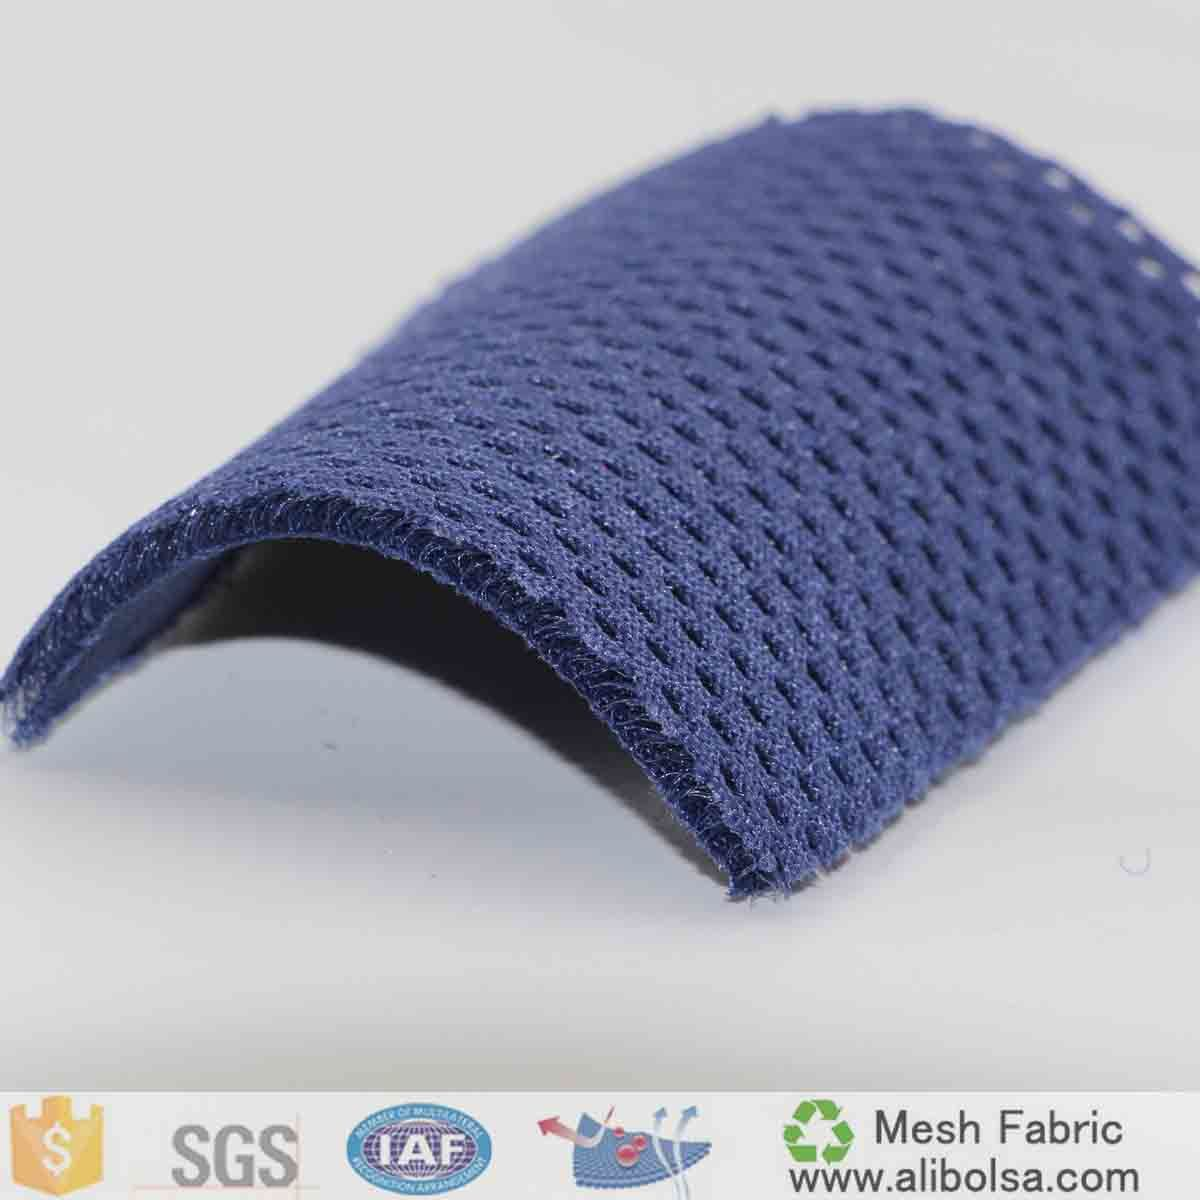 China New Design Mesh Fabric Motorcycle Seat Cover Photos Pictures